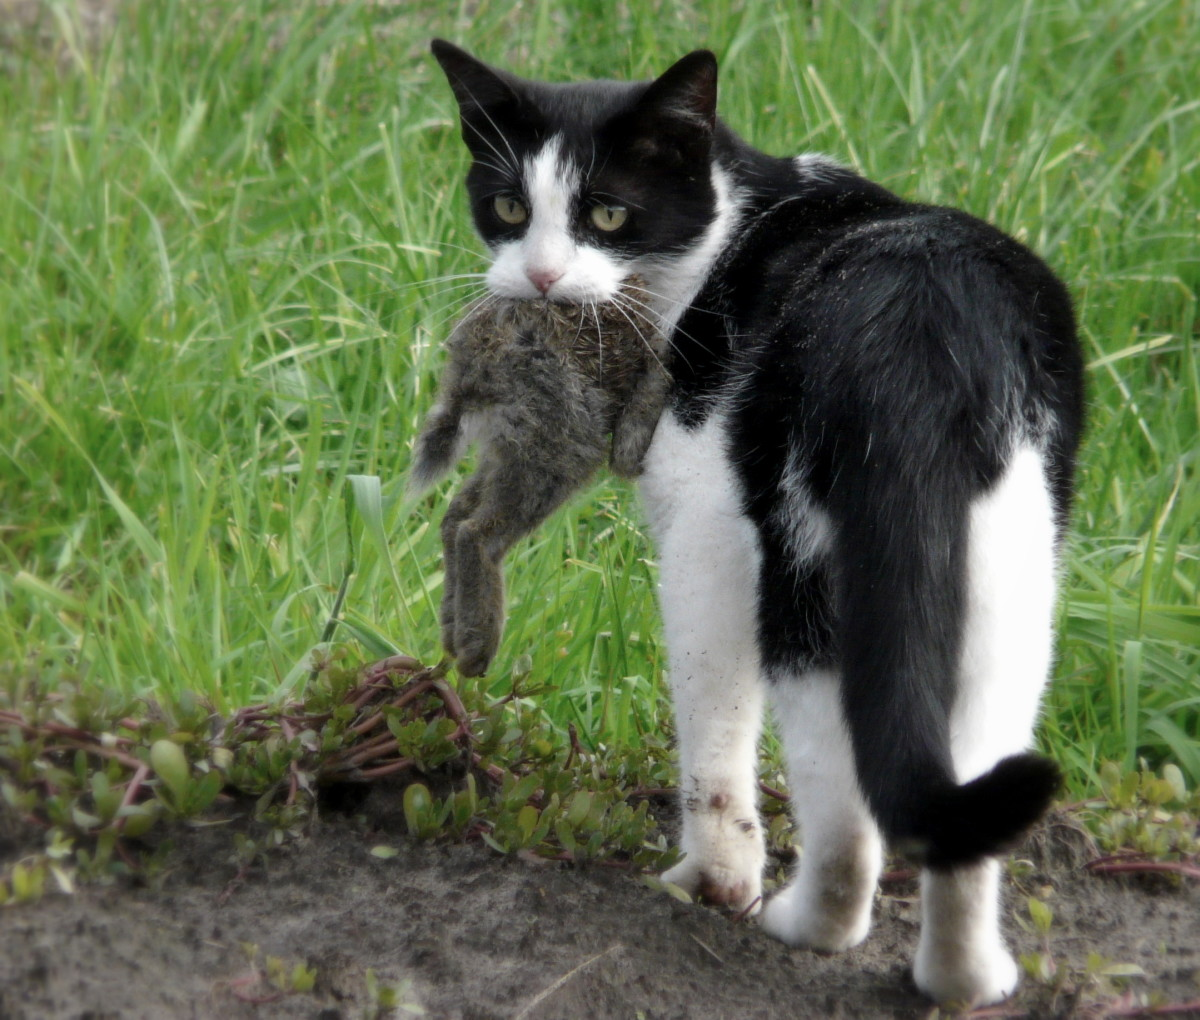 Cats, dogs, and ferrets are hunting animals and can easily catch and kill a domestic rabbit.